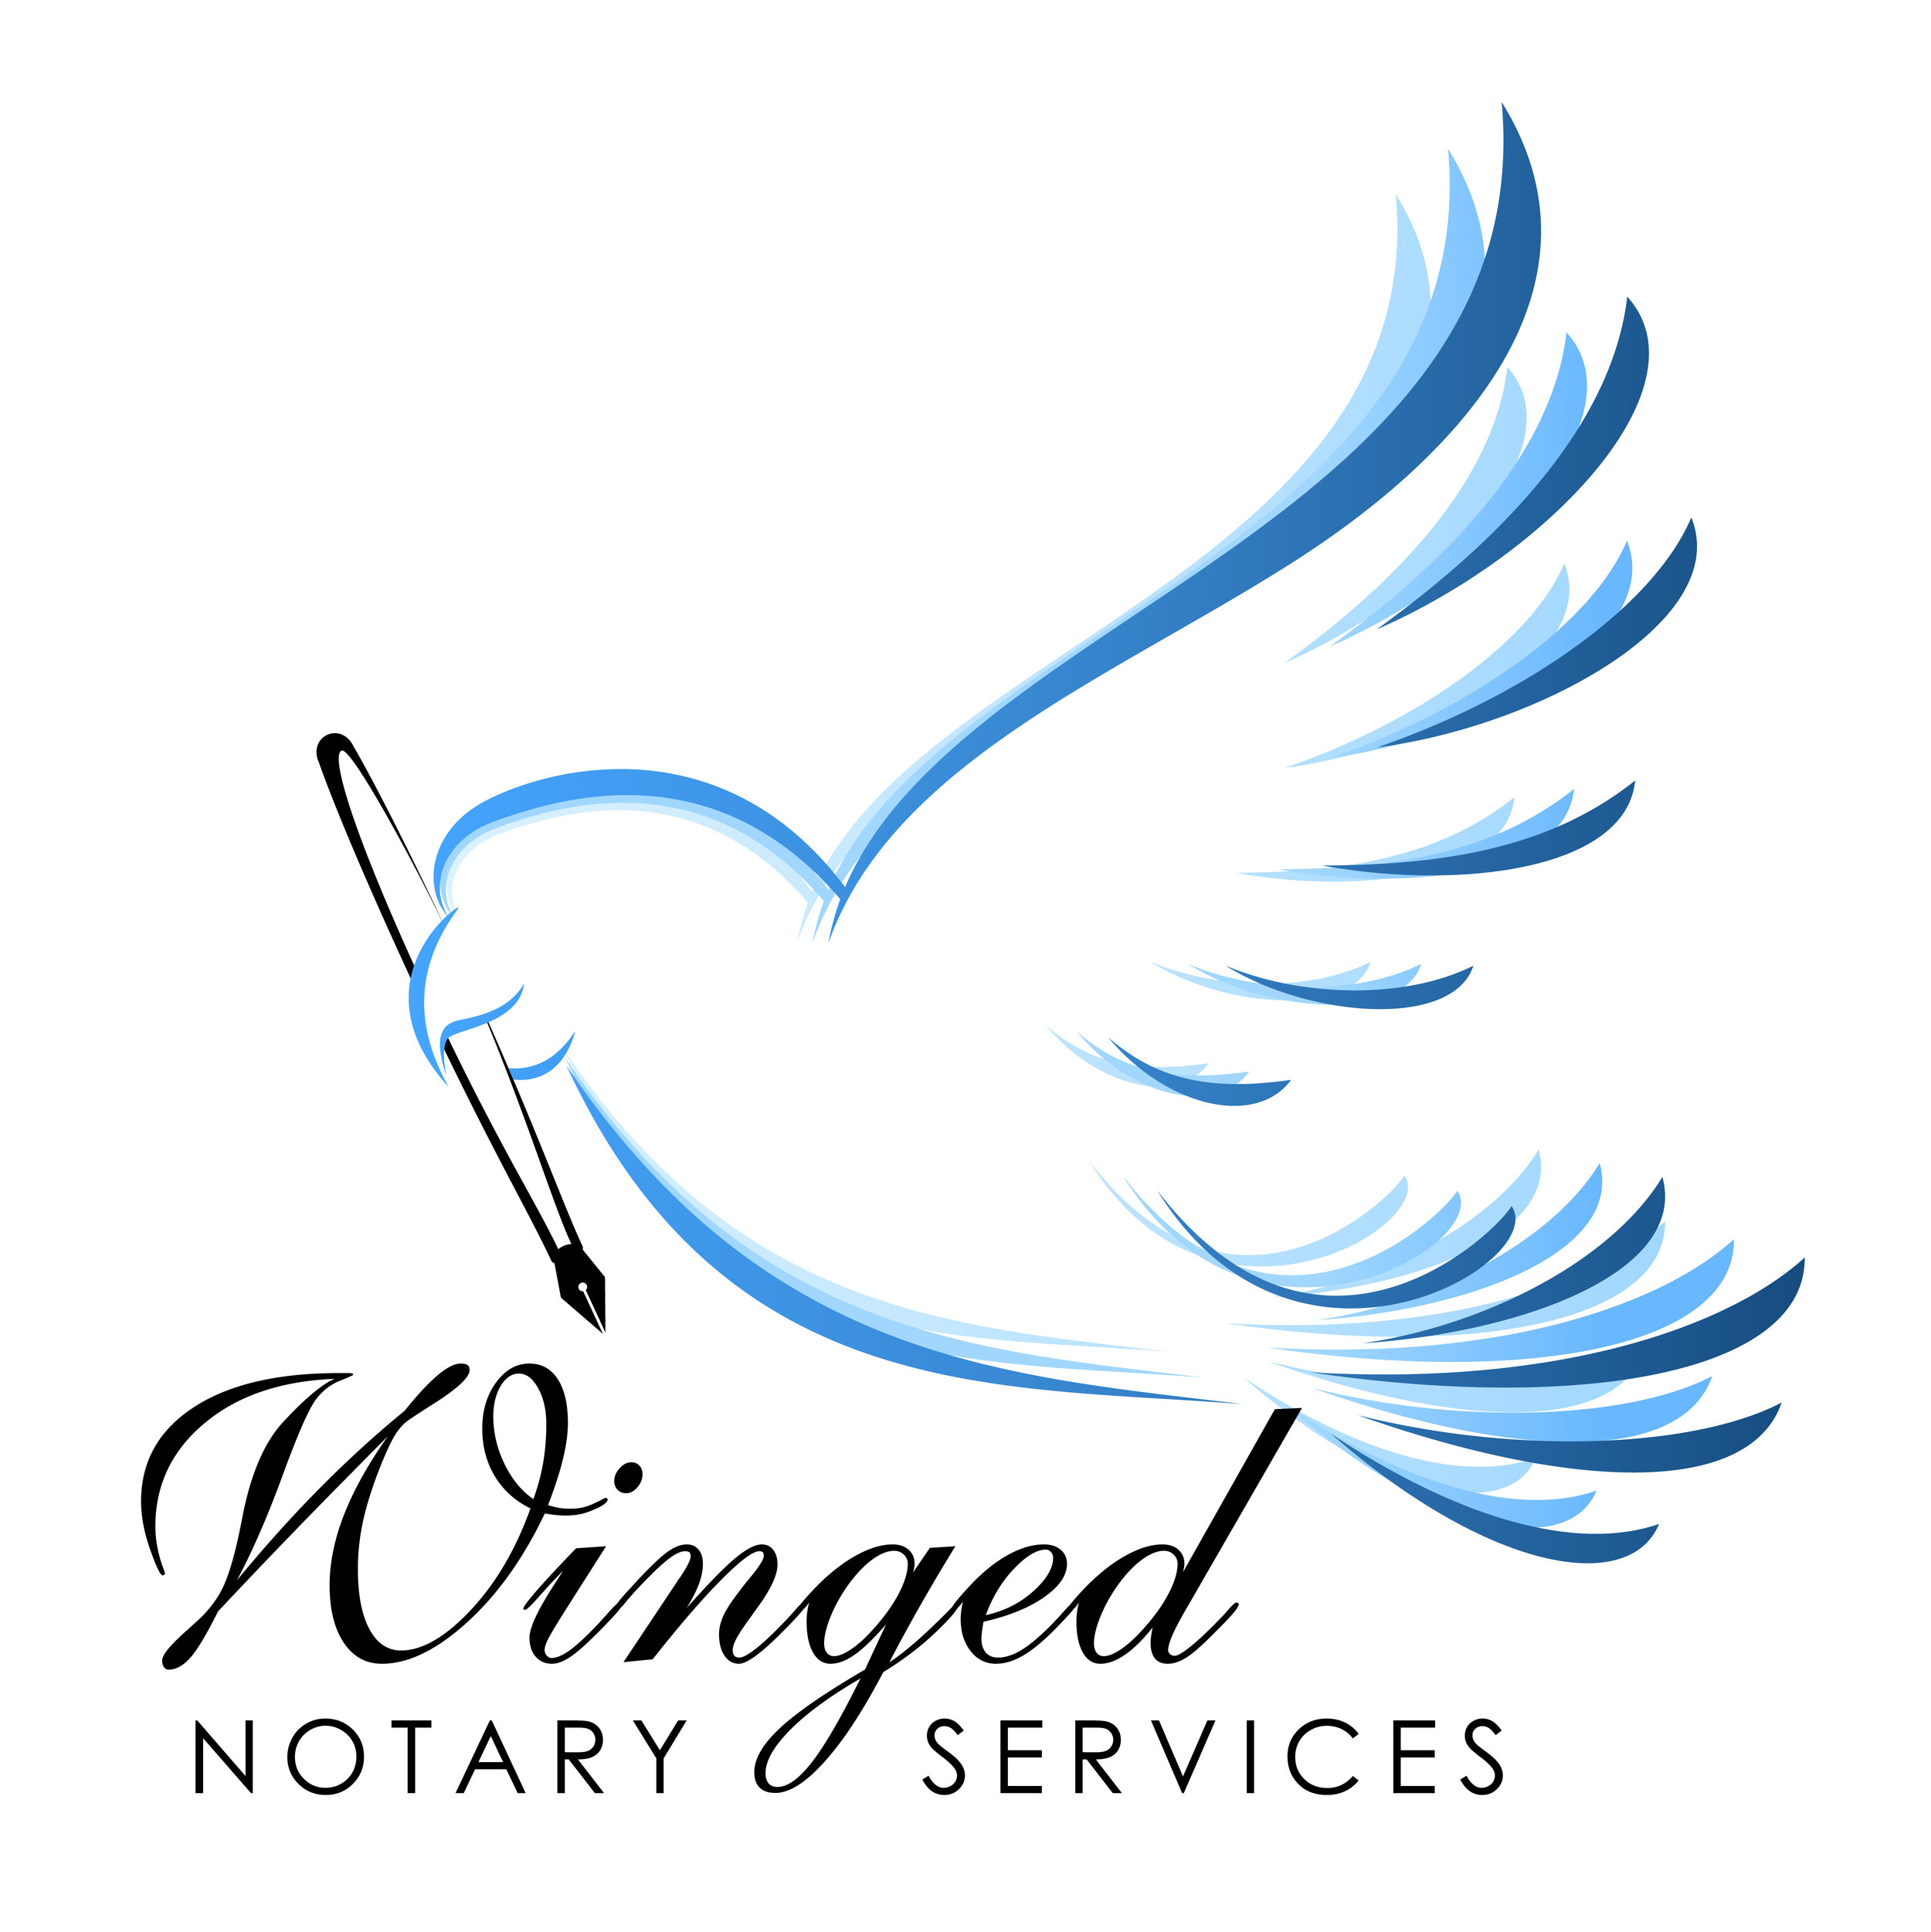 Winged Notary Services logo